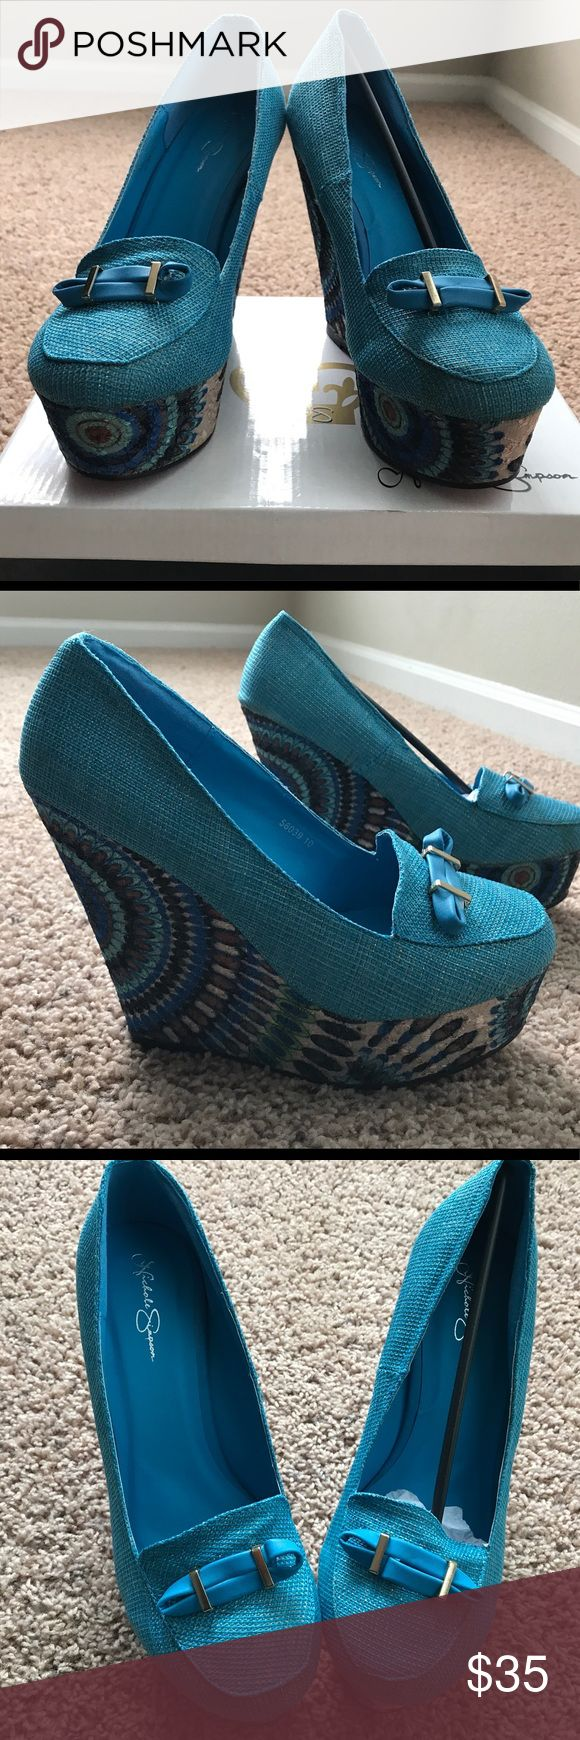 NEW!!!! Turquoise Wedge Loafers with Bow Reasonable Offers Accepted.  Turquoise Wedge Loafers with design wedge. Heel approx 3 inches with approx two inches platform.  The Loafers have a turquoise ad gold sparkle of color. Very cute. Brand new. Reasonable offers accepted. Nicole Simpson Shoes Wedges